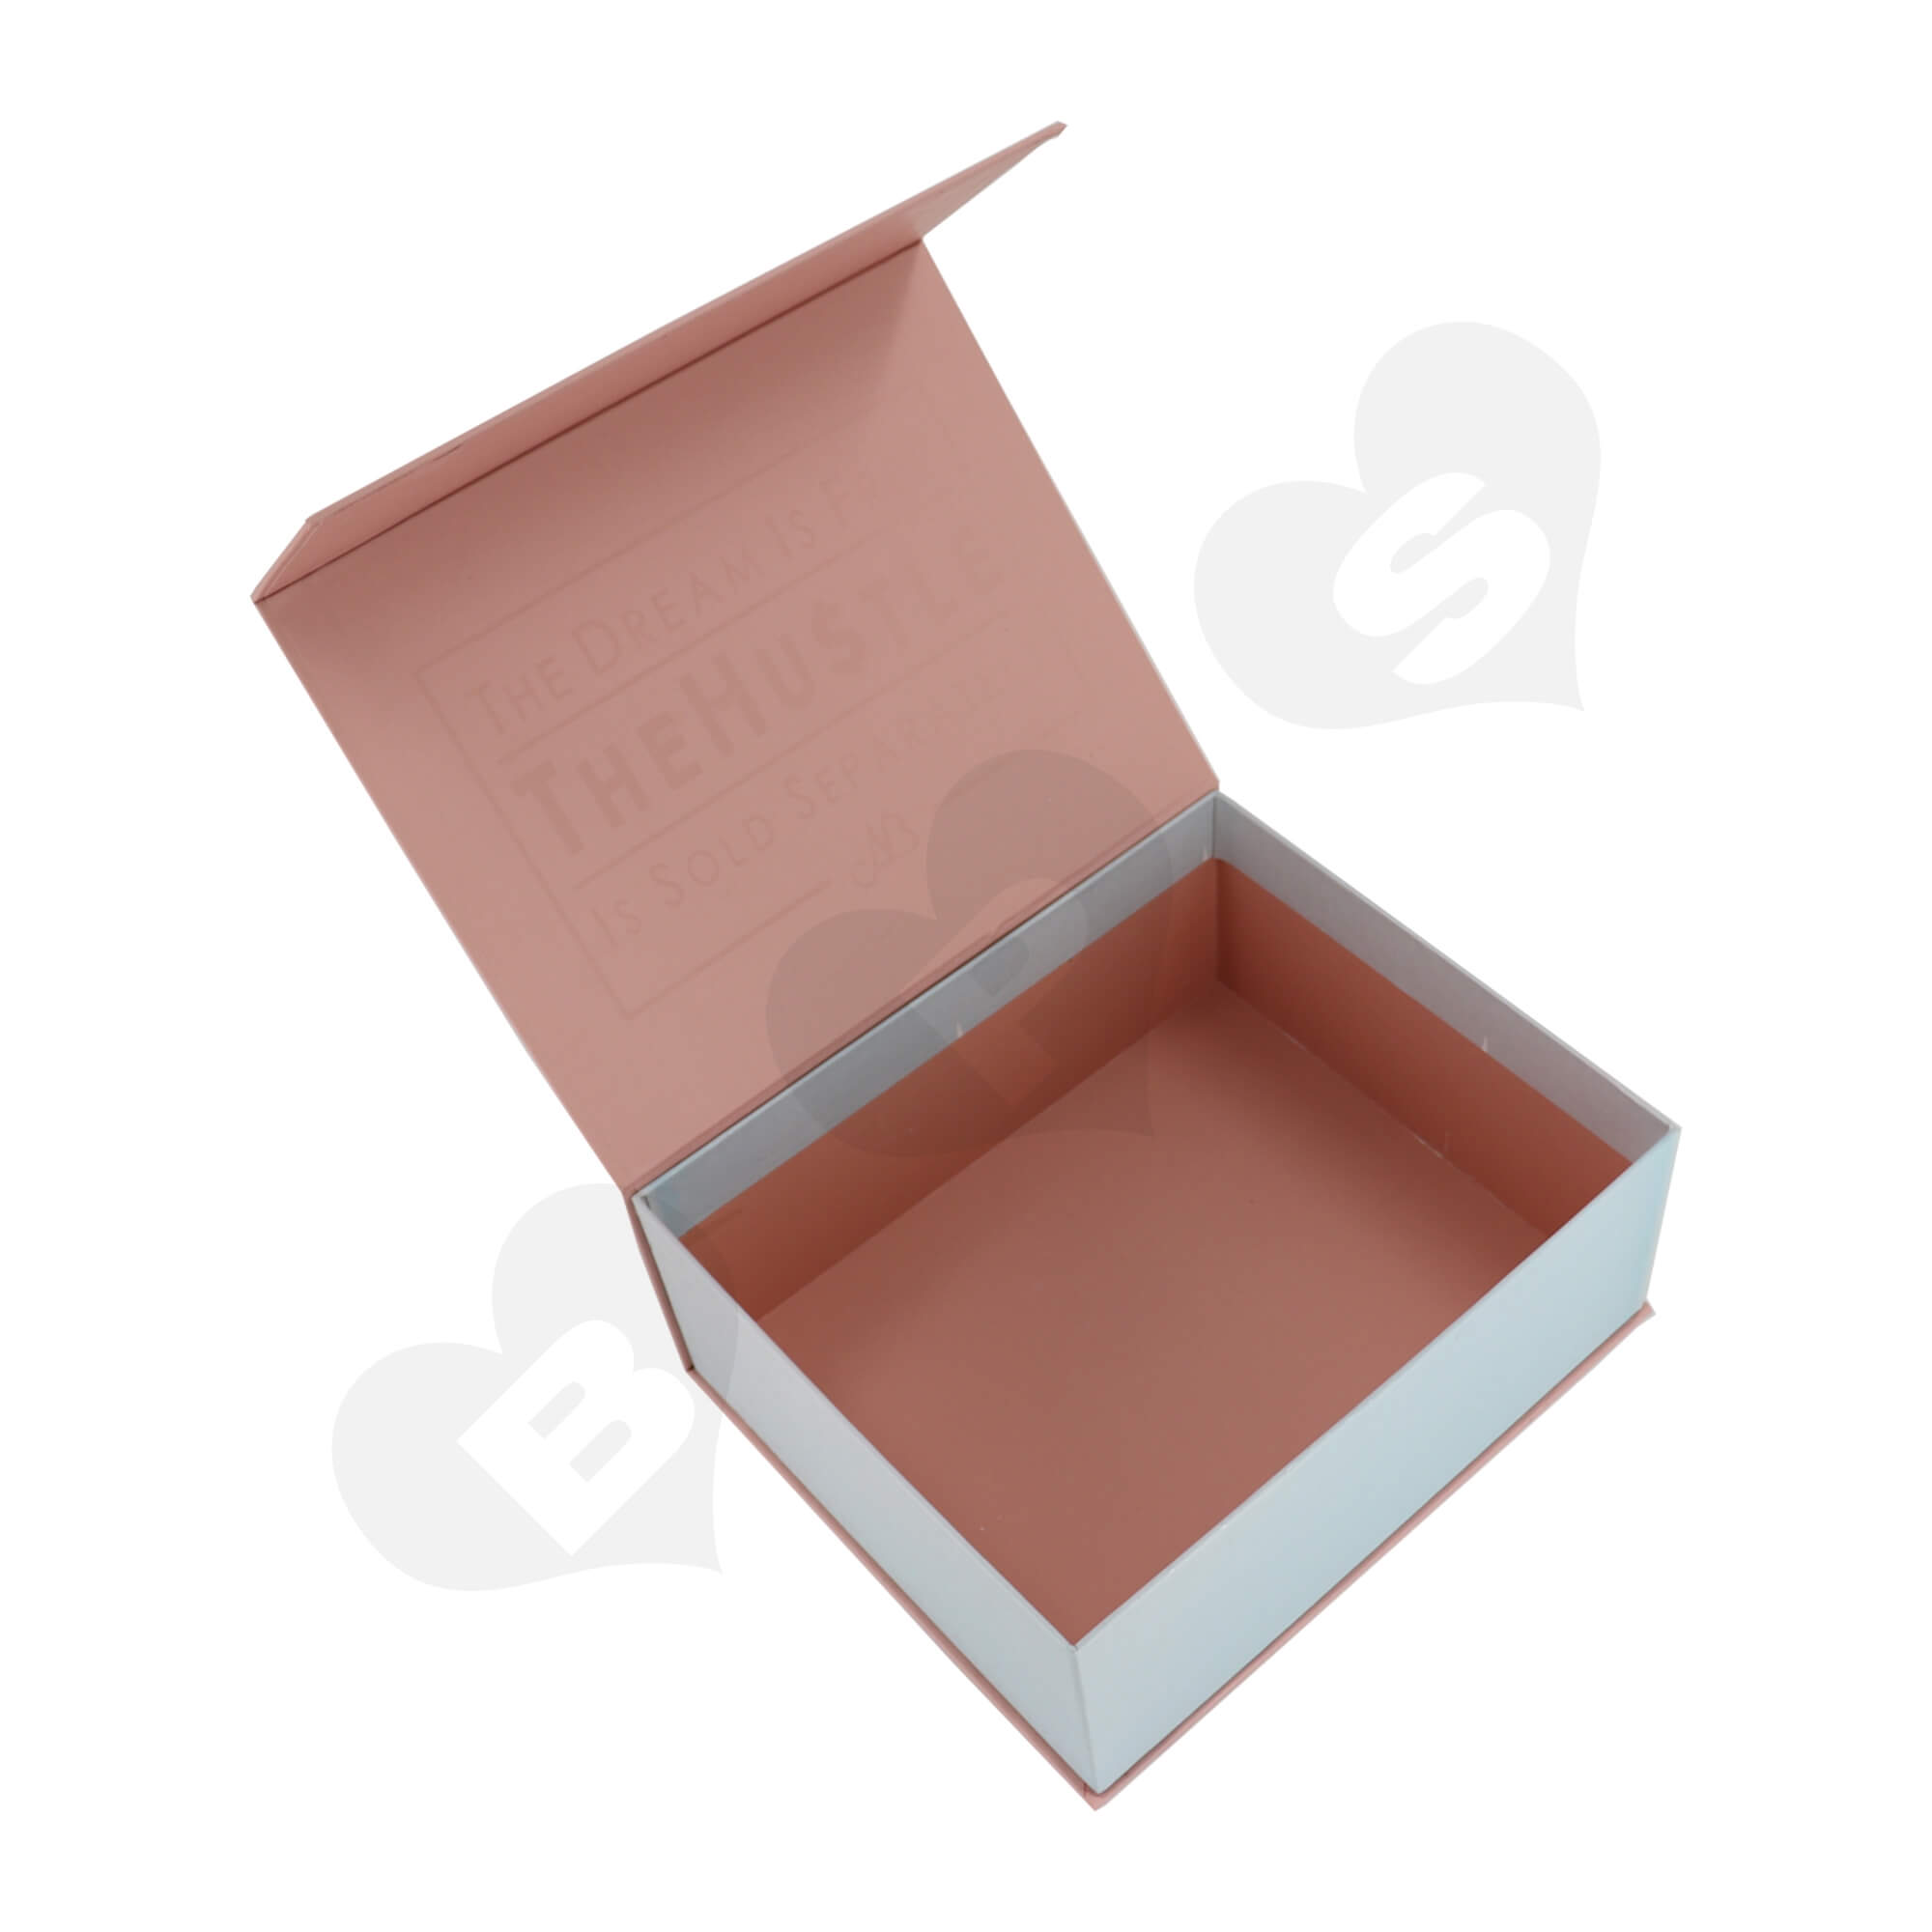 Luxury Cardboard Gift Box For Packing Cosmetic Makeup Kit Side View Five